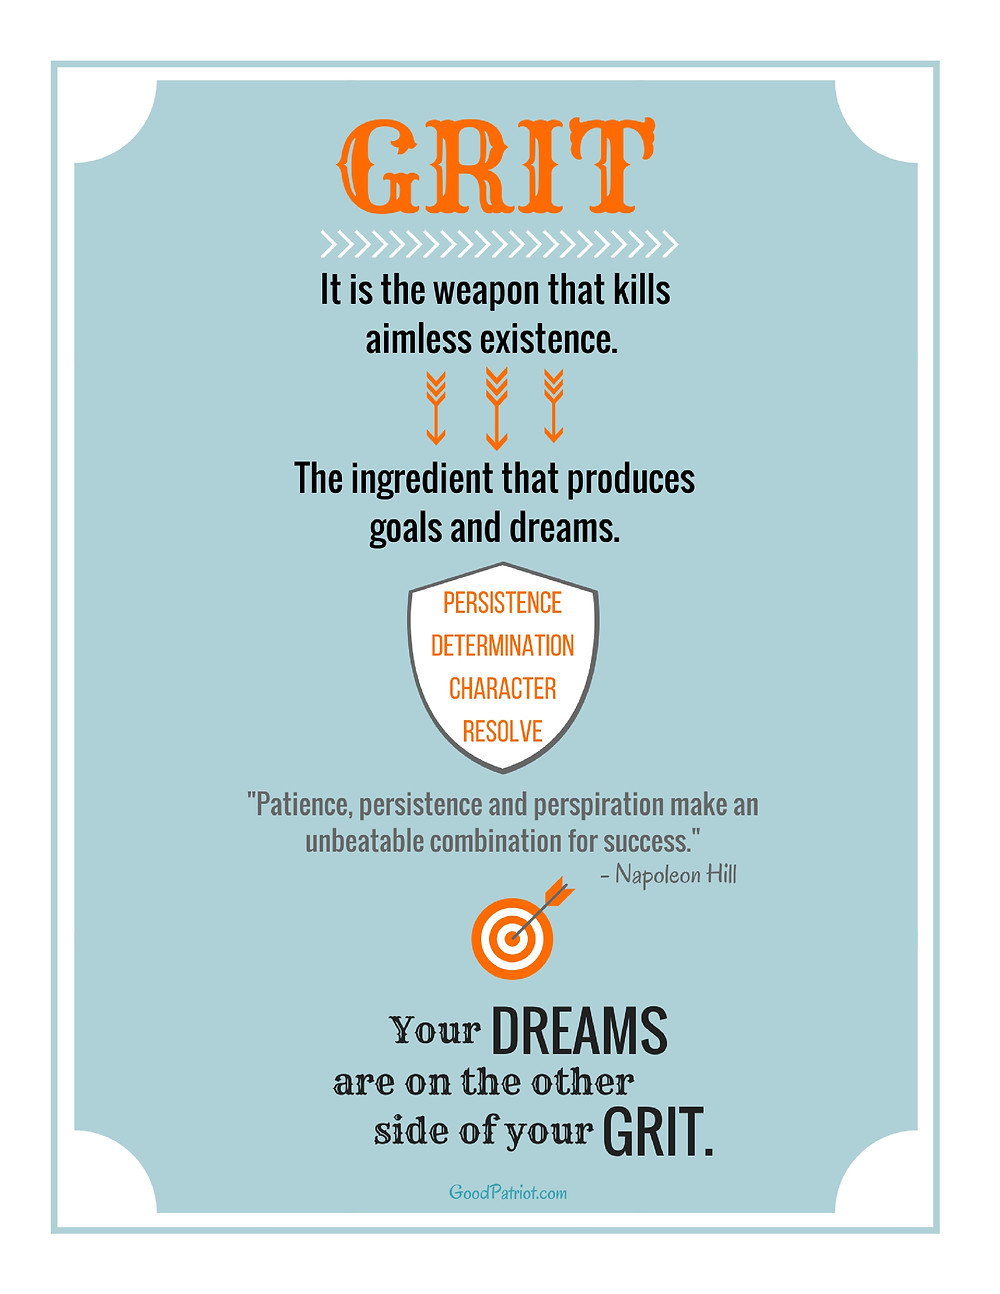 A FREE motivational graphic about having GRIT